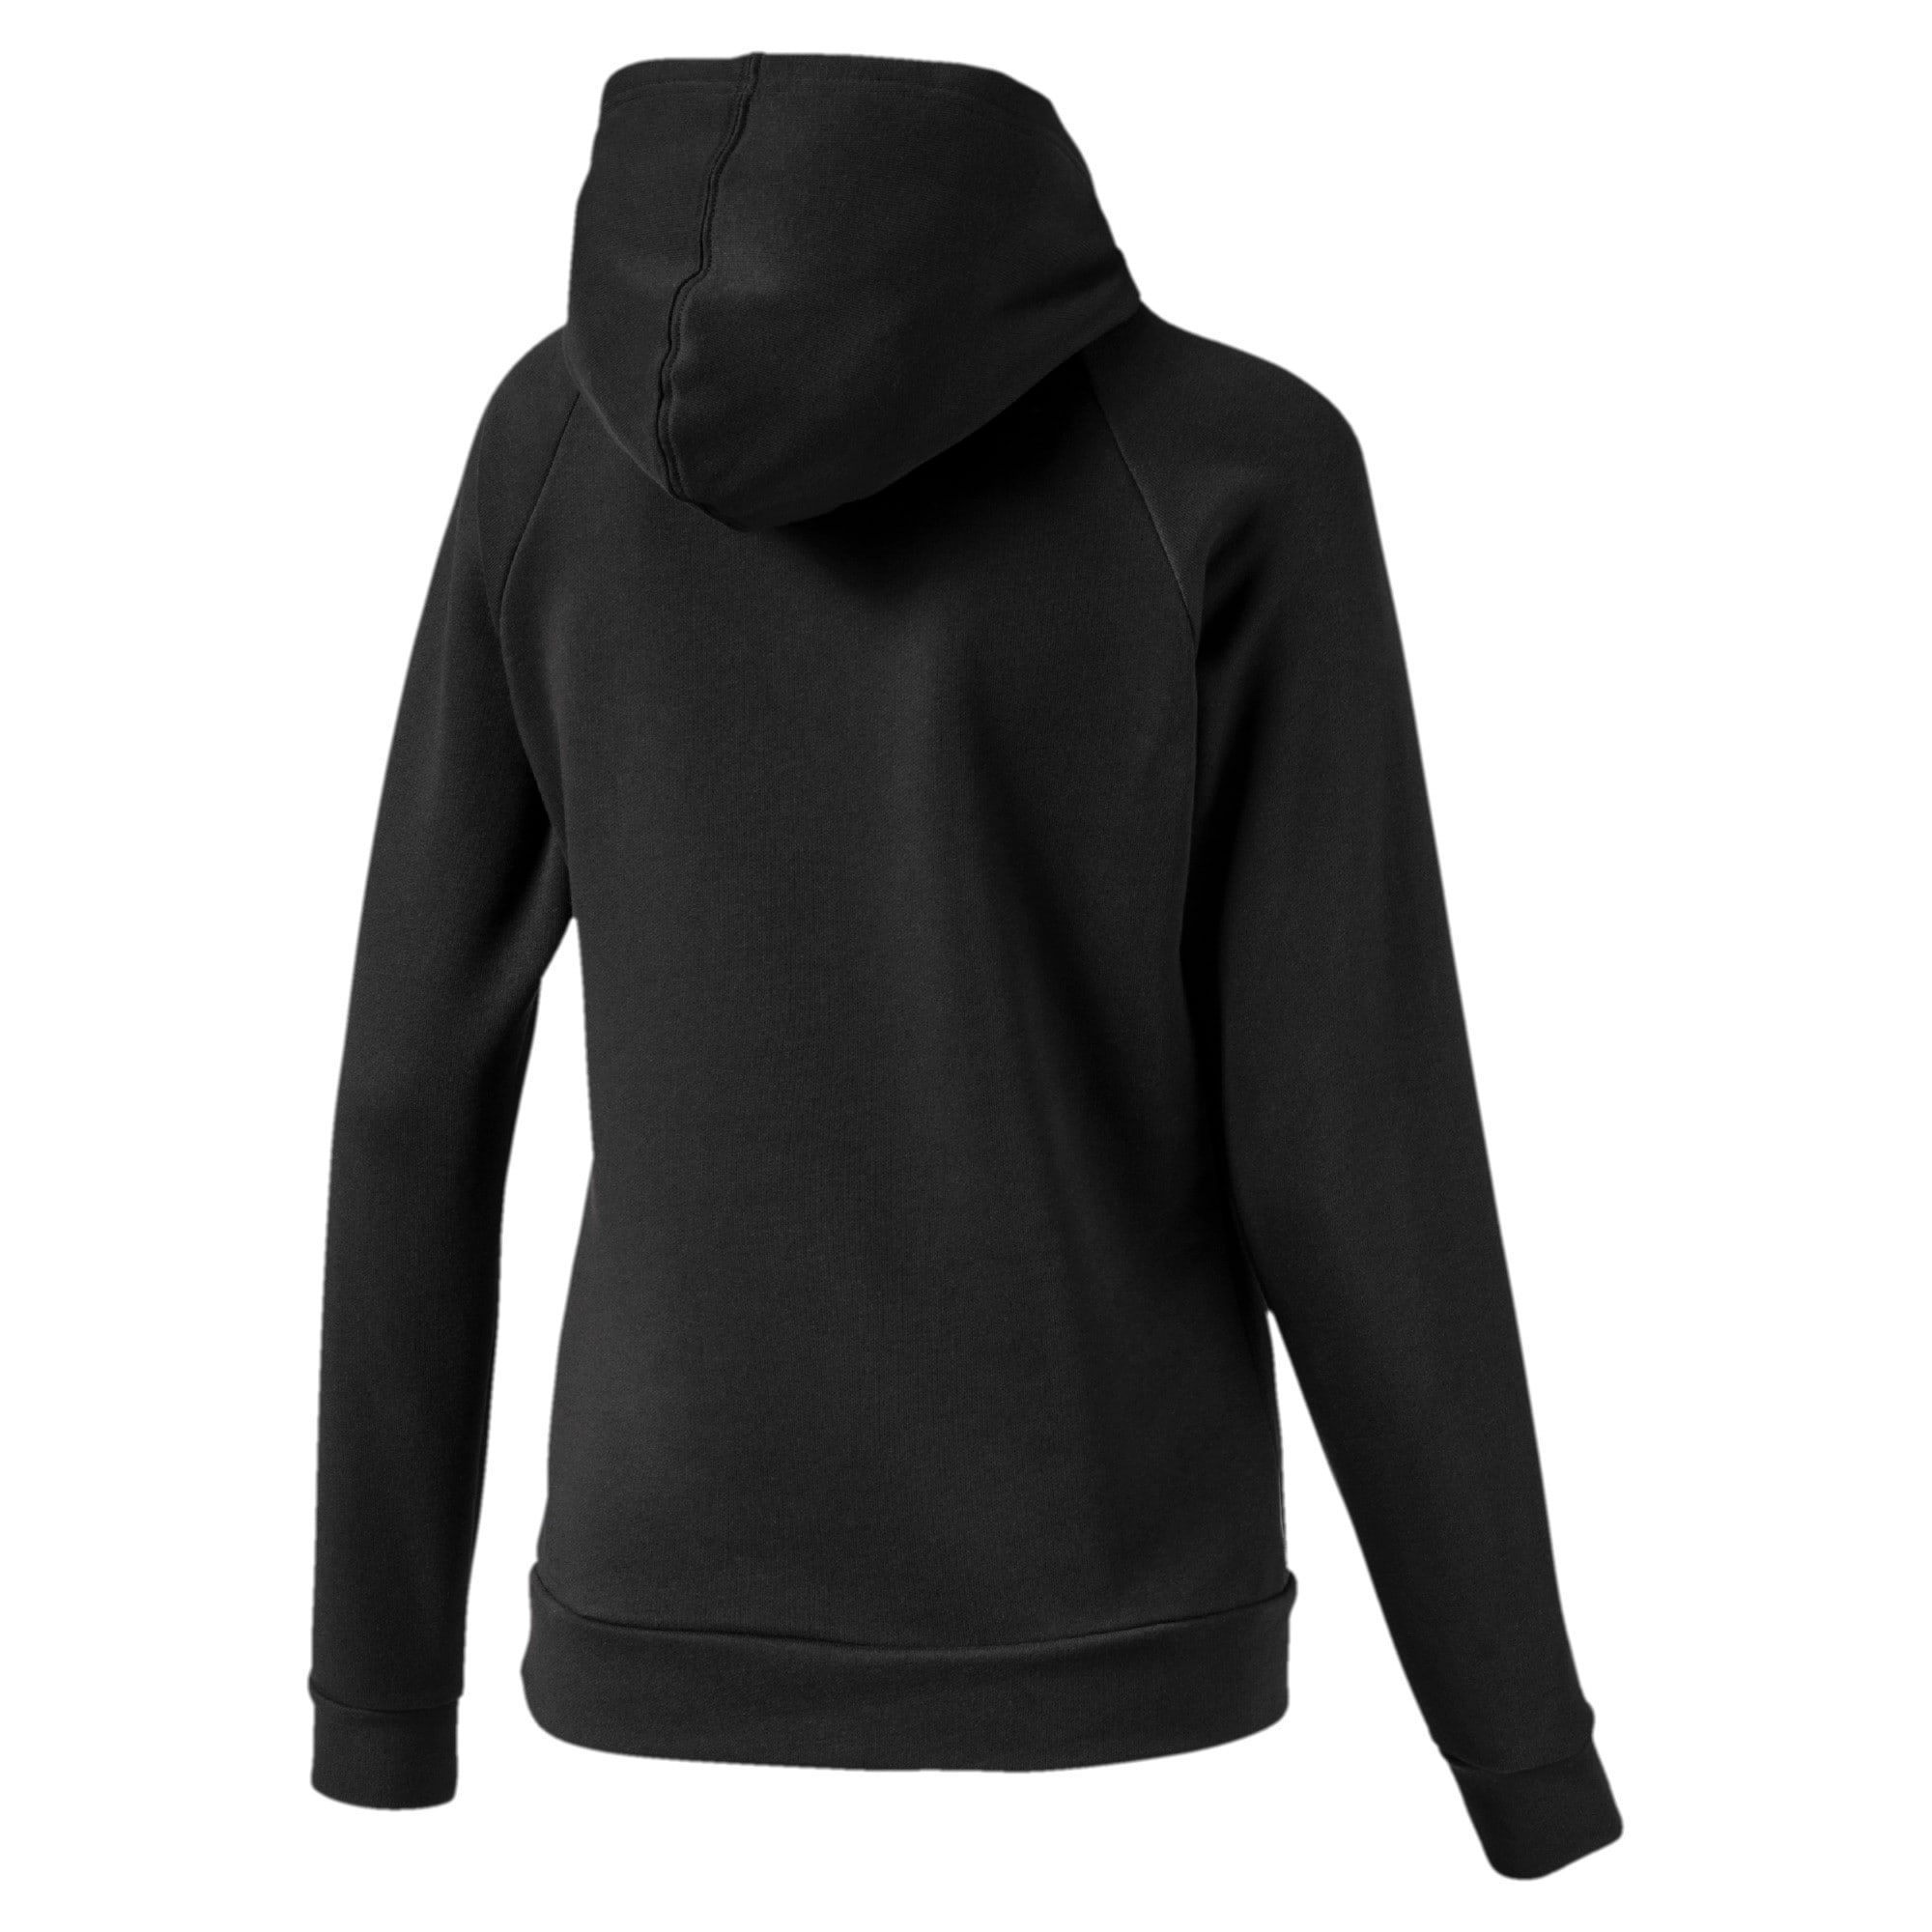 Thumbnail 5 of Fav Women's Training Hoodie, Puma Black, medium-IND